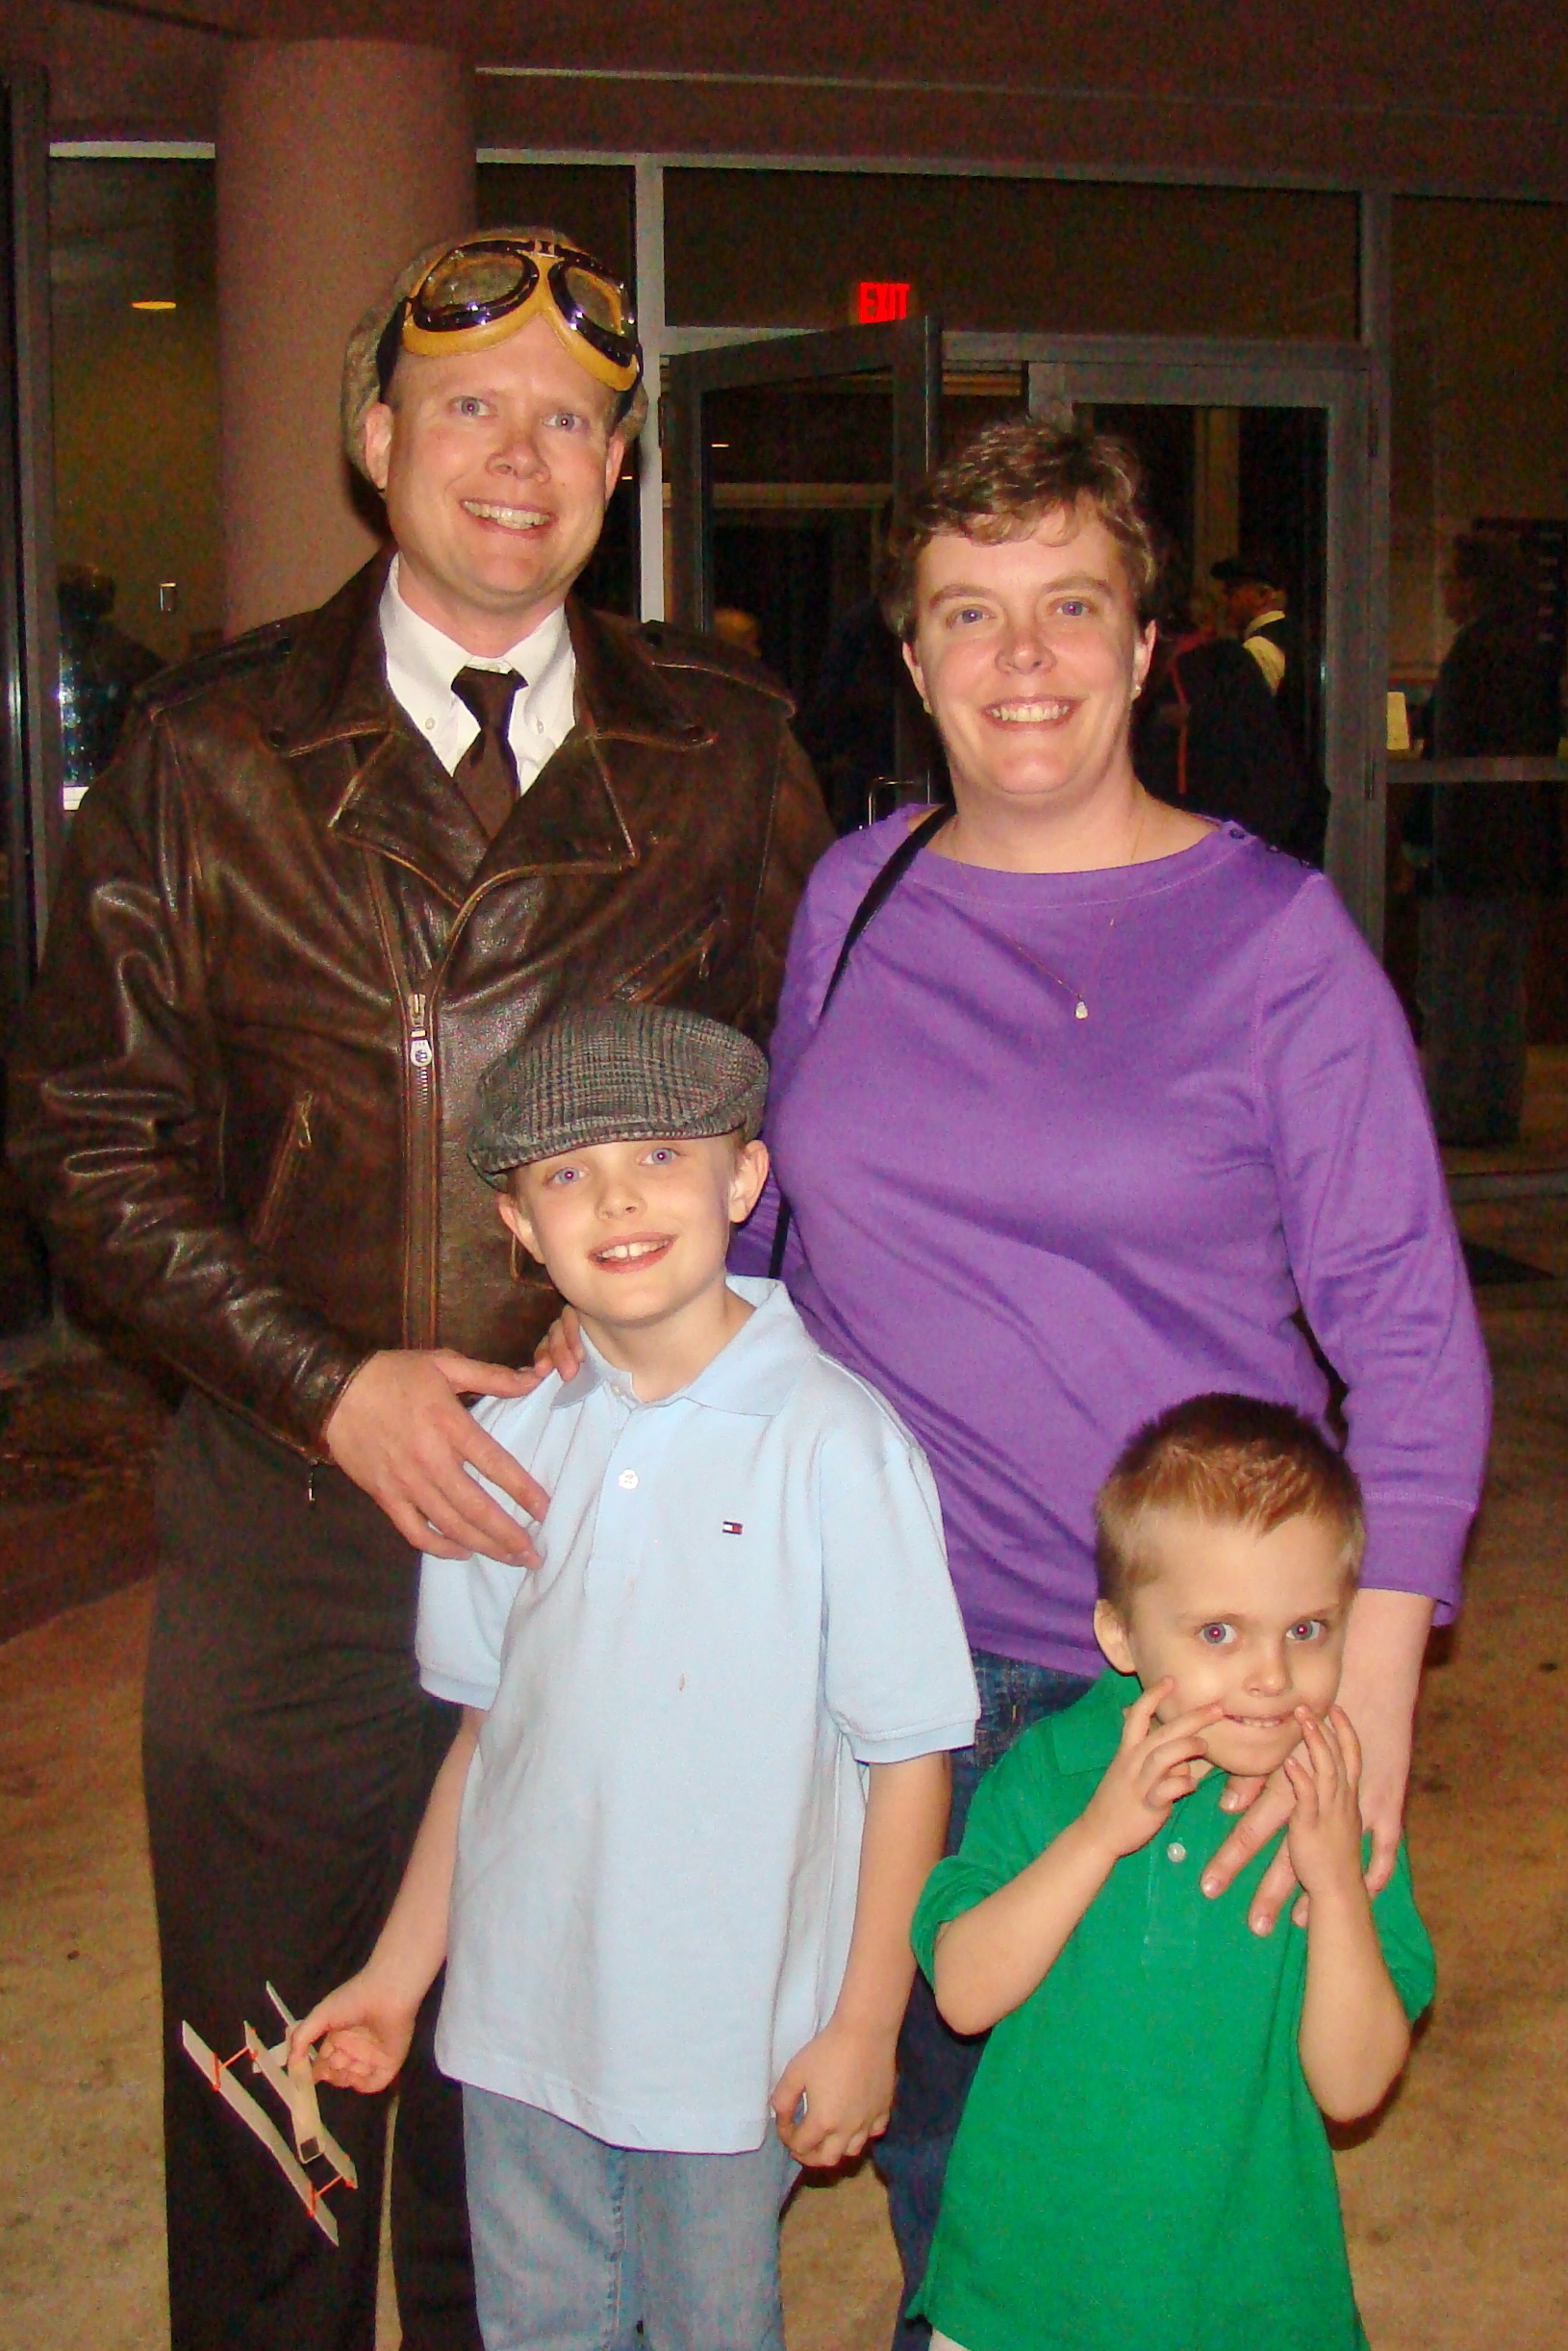 Chris & Andie Minner with Michael & Ernie - 1, 31 Dec '13.JPG